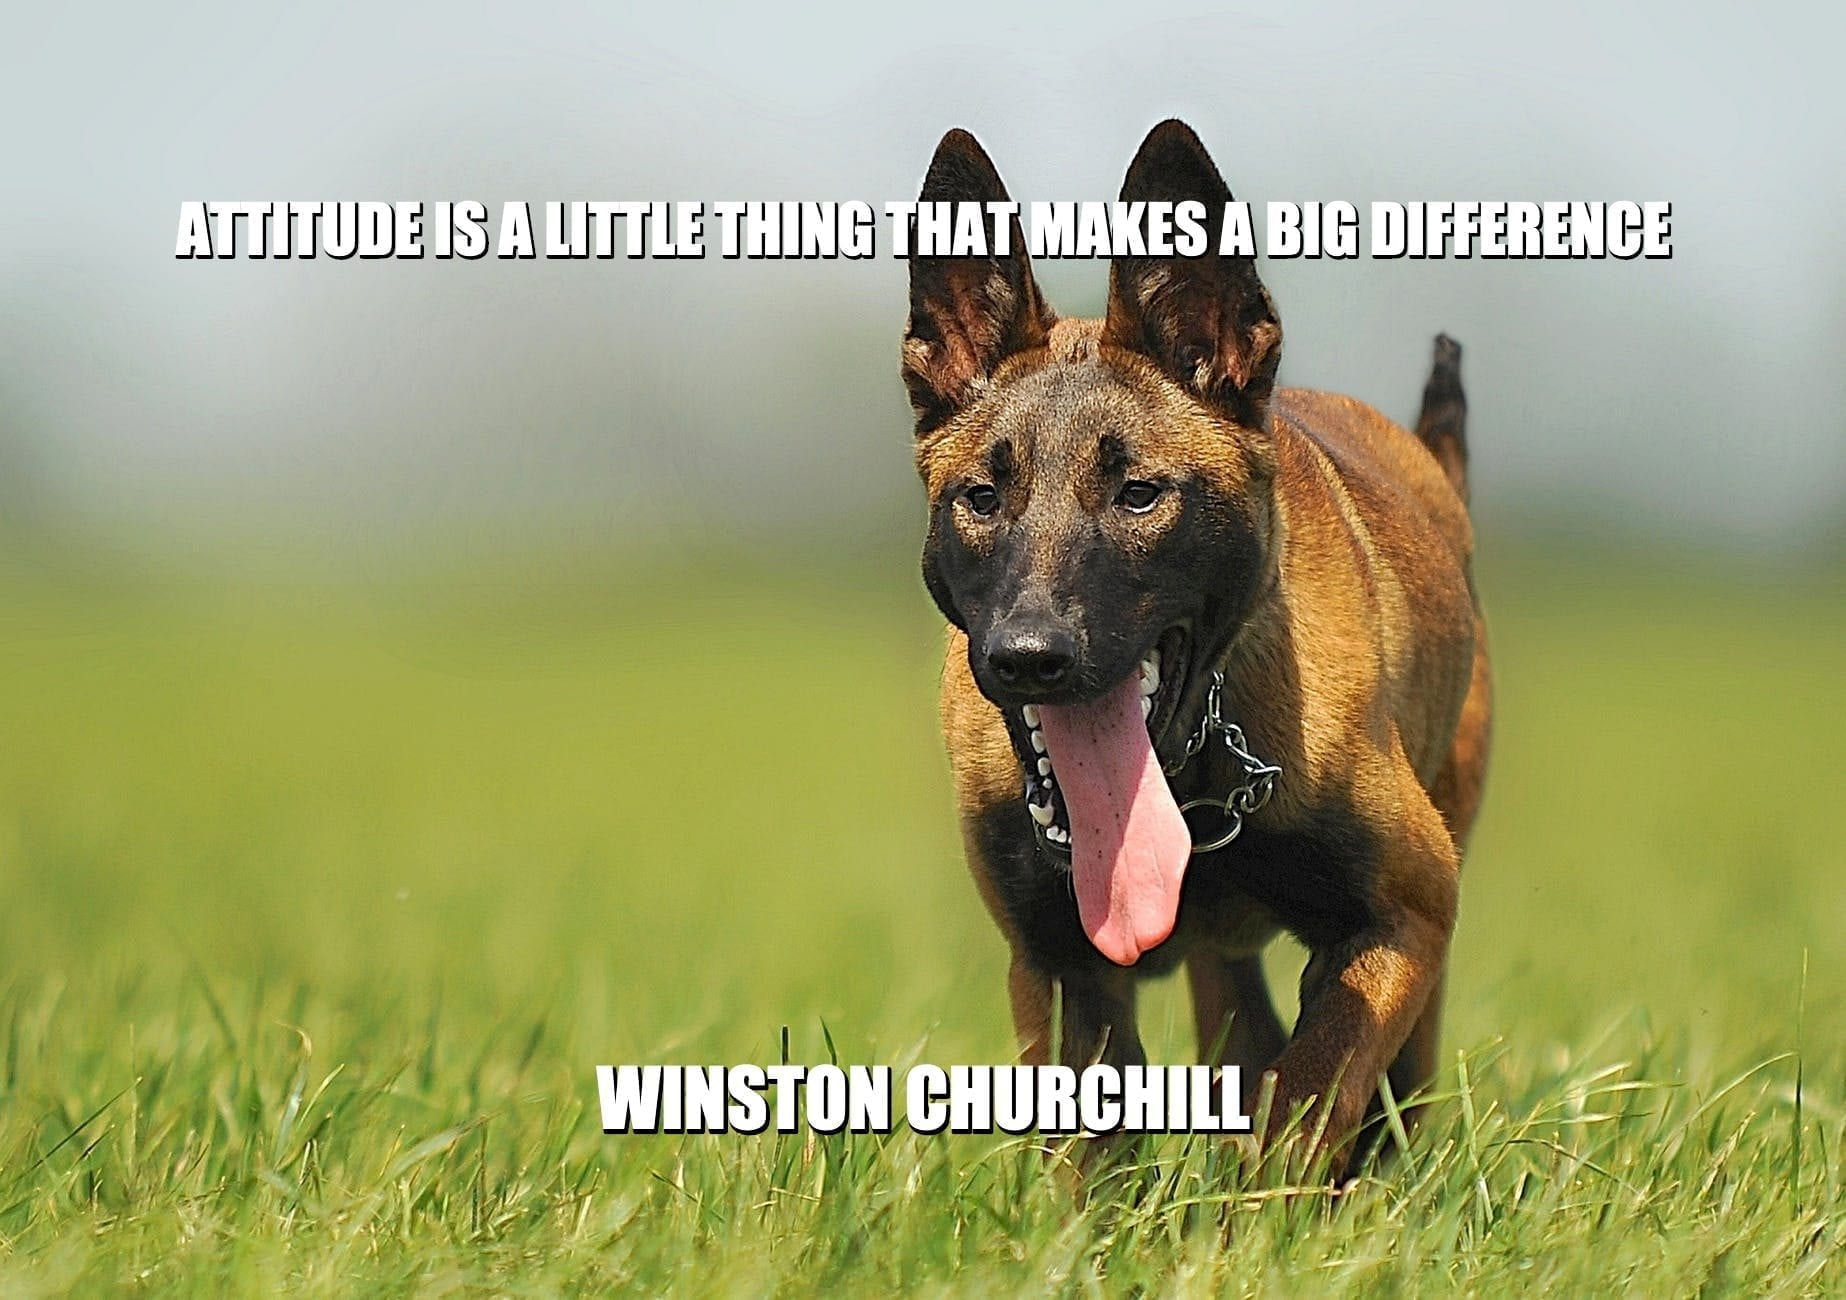 Daily Quotes: Attitude is a Little Thing That Makes a Big Difference petworldglobal.com